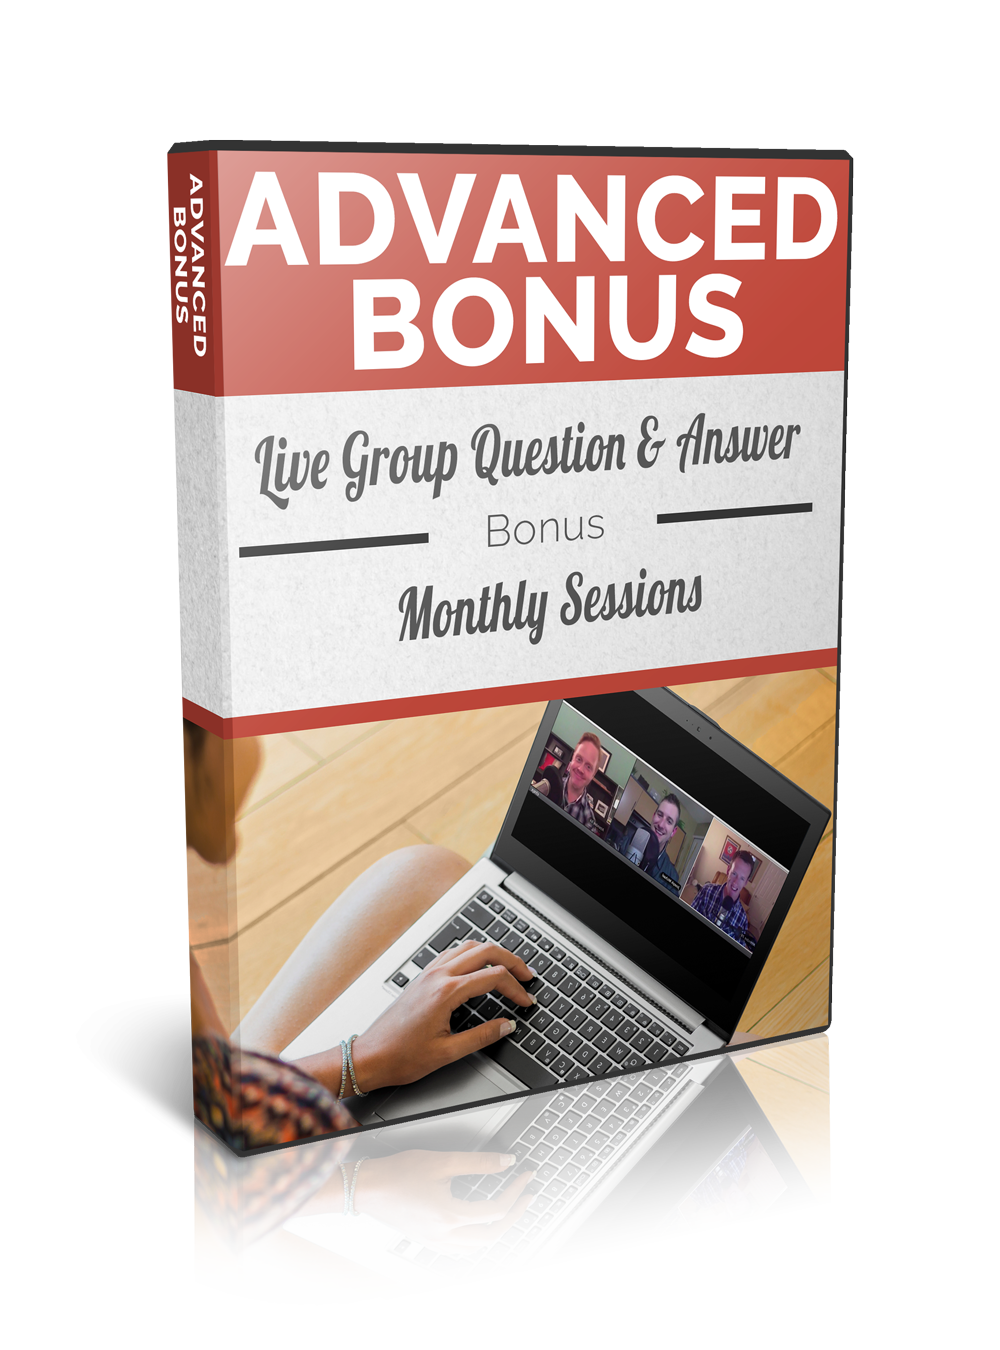 www.learn-scrivener-fast.com Scrivener Training & Coaching Course - Advanced Bonu1 - Live Q&A